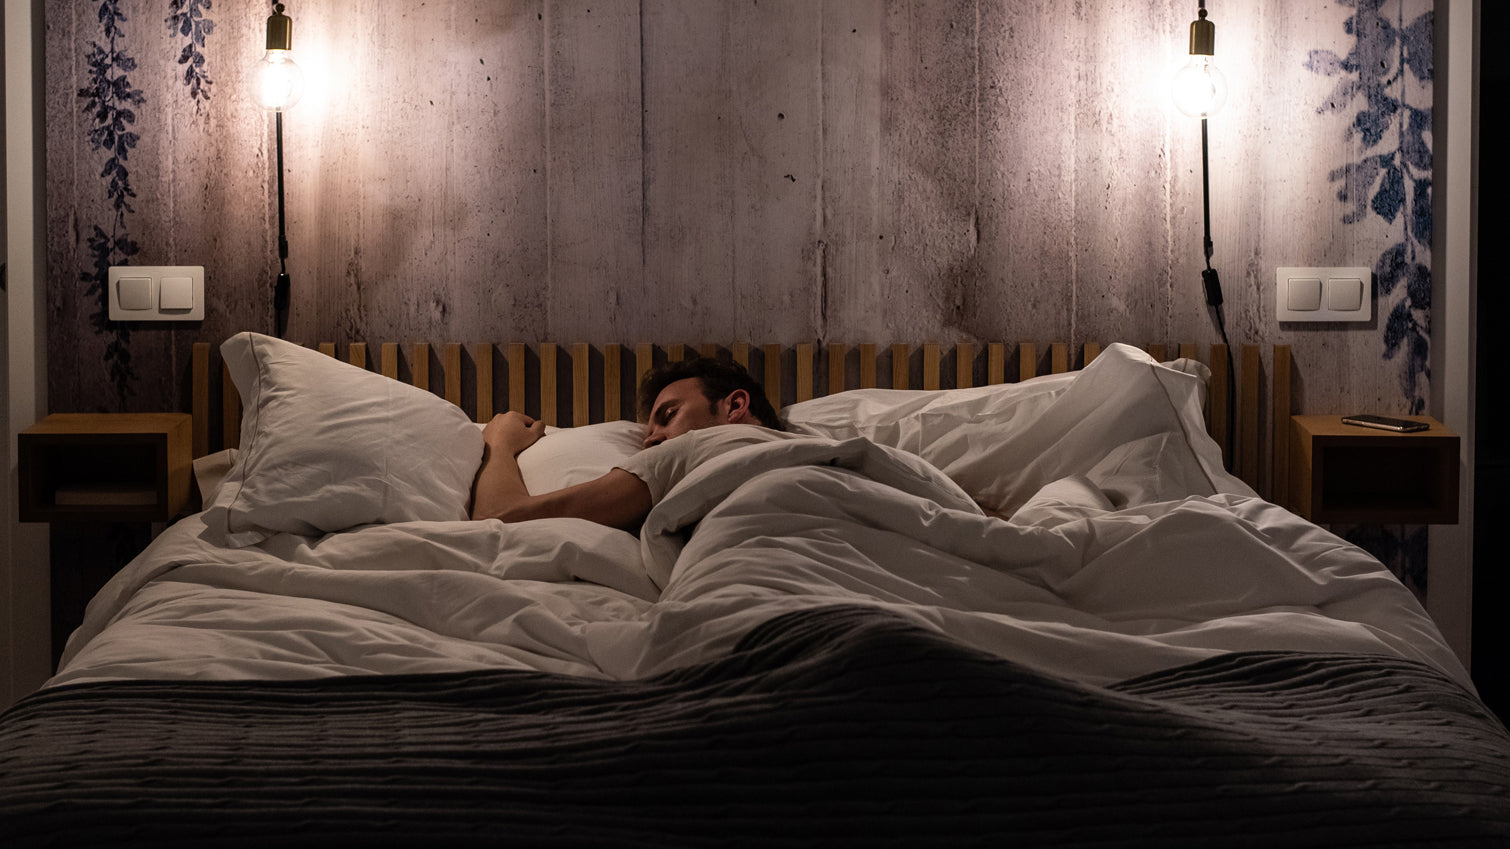 Deeper Brain Sleep Improves your Performance